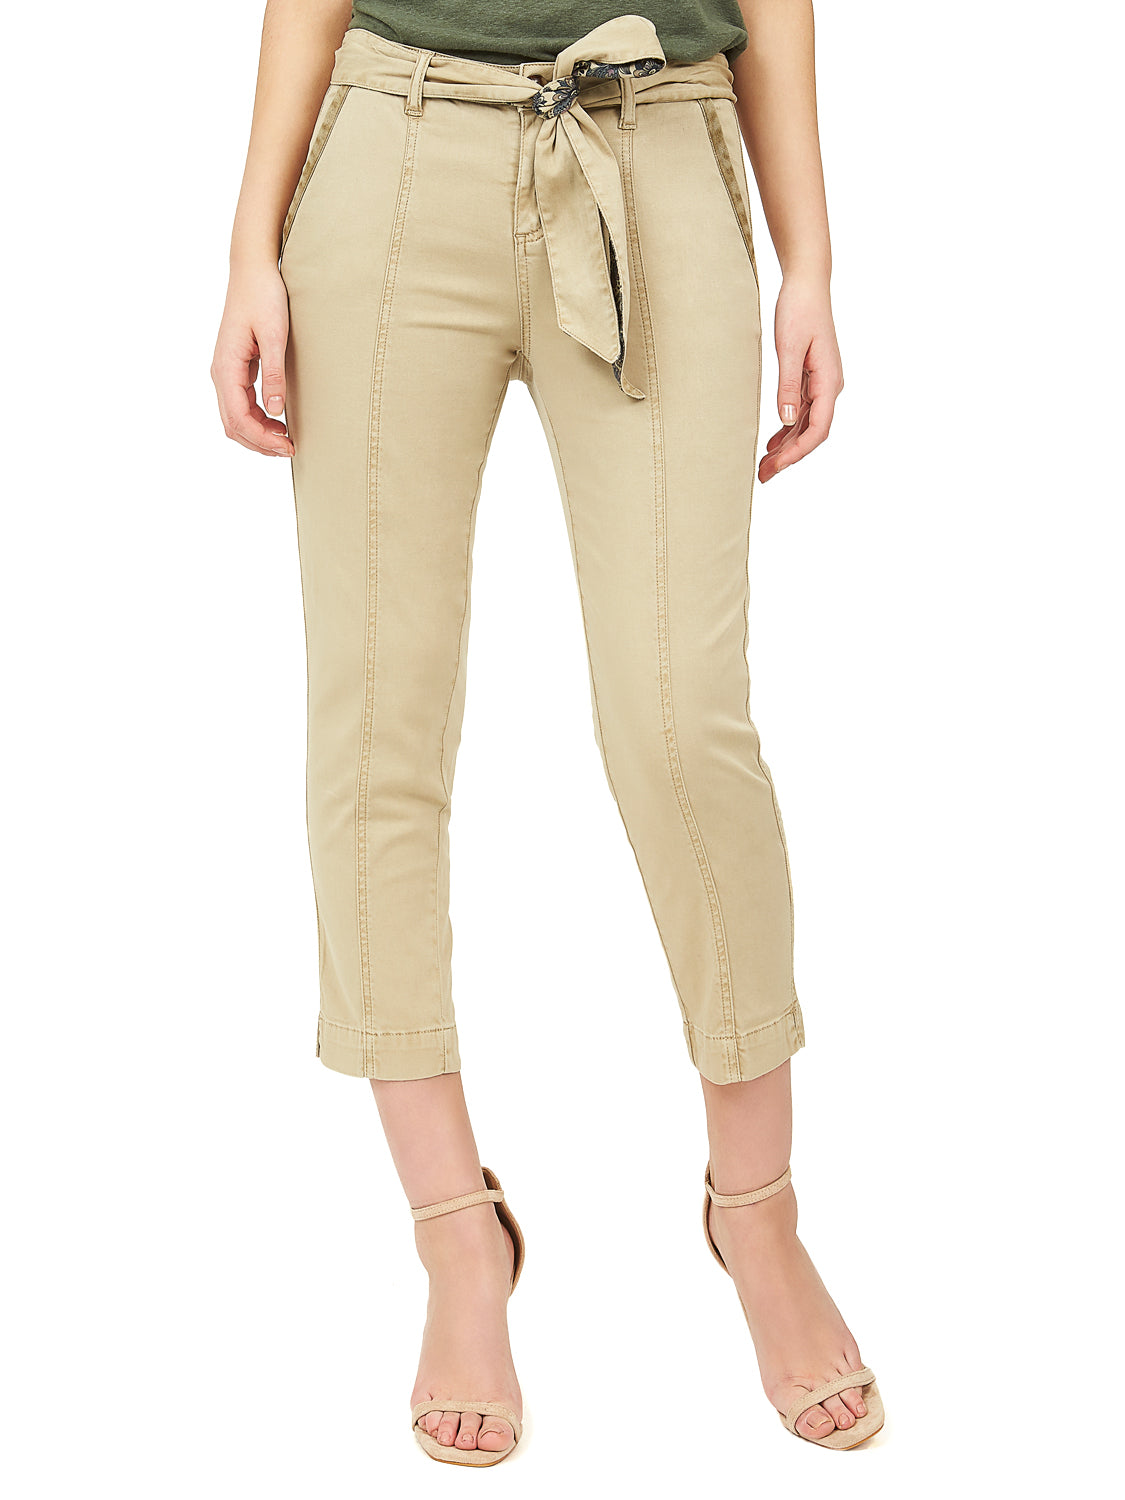 Pantalon capri safari